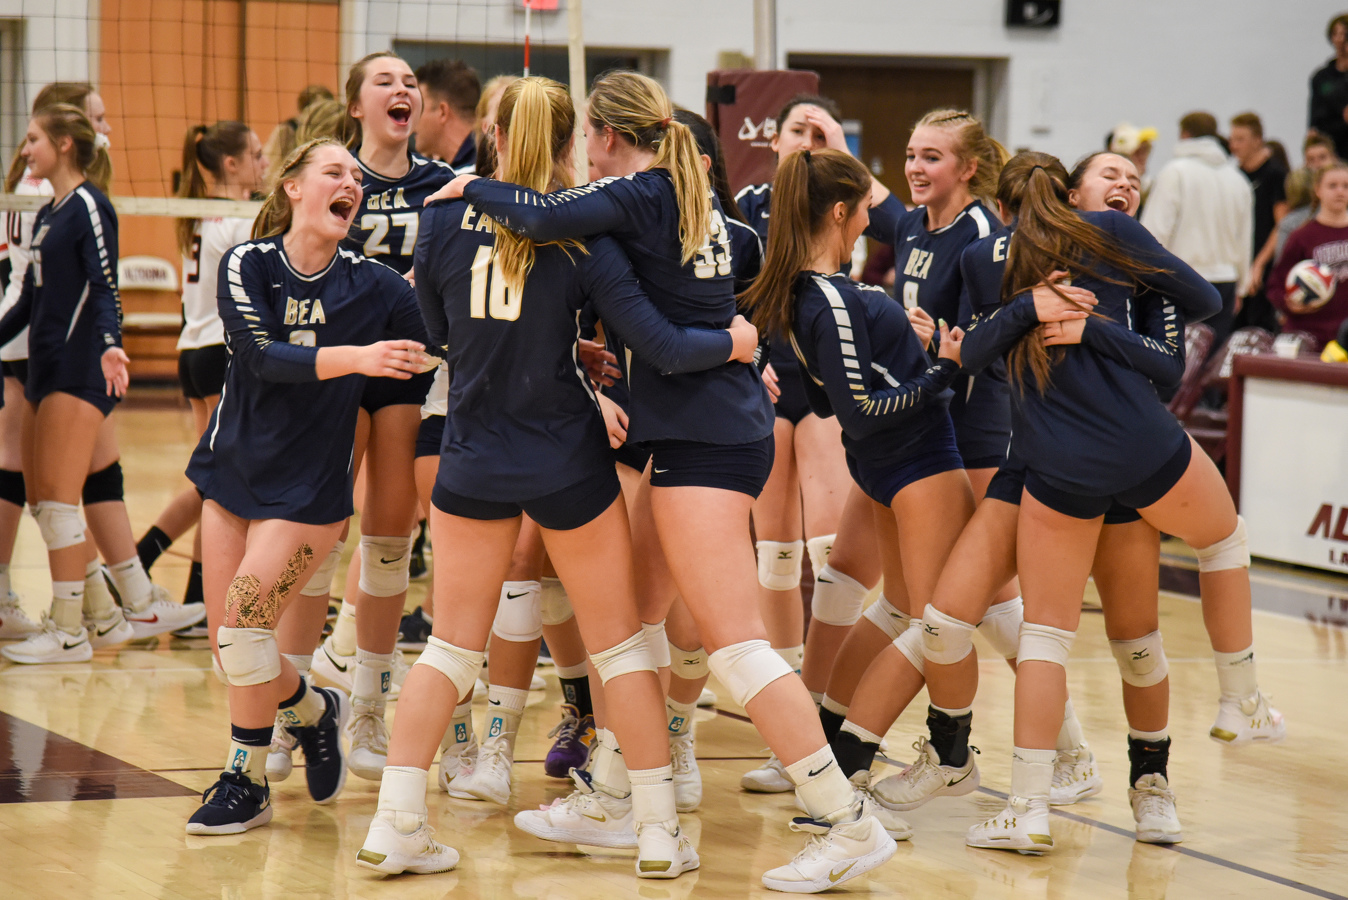 State College Pa Bea State College Girls Volleyball Head To Piaa Quarterfinals